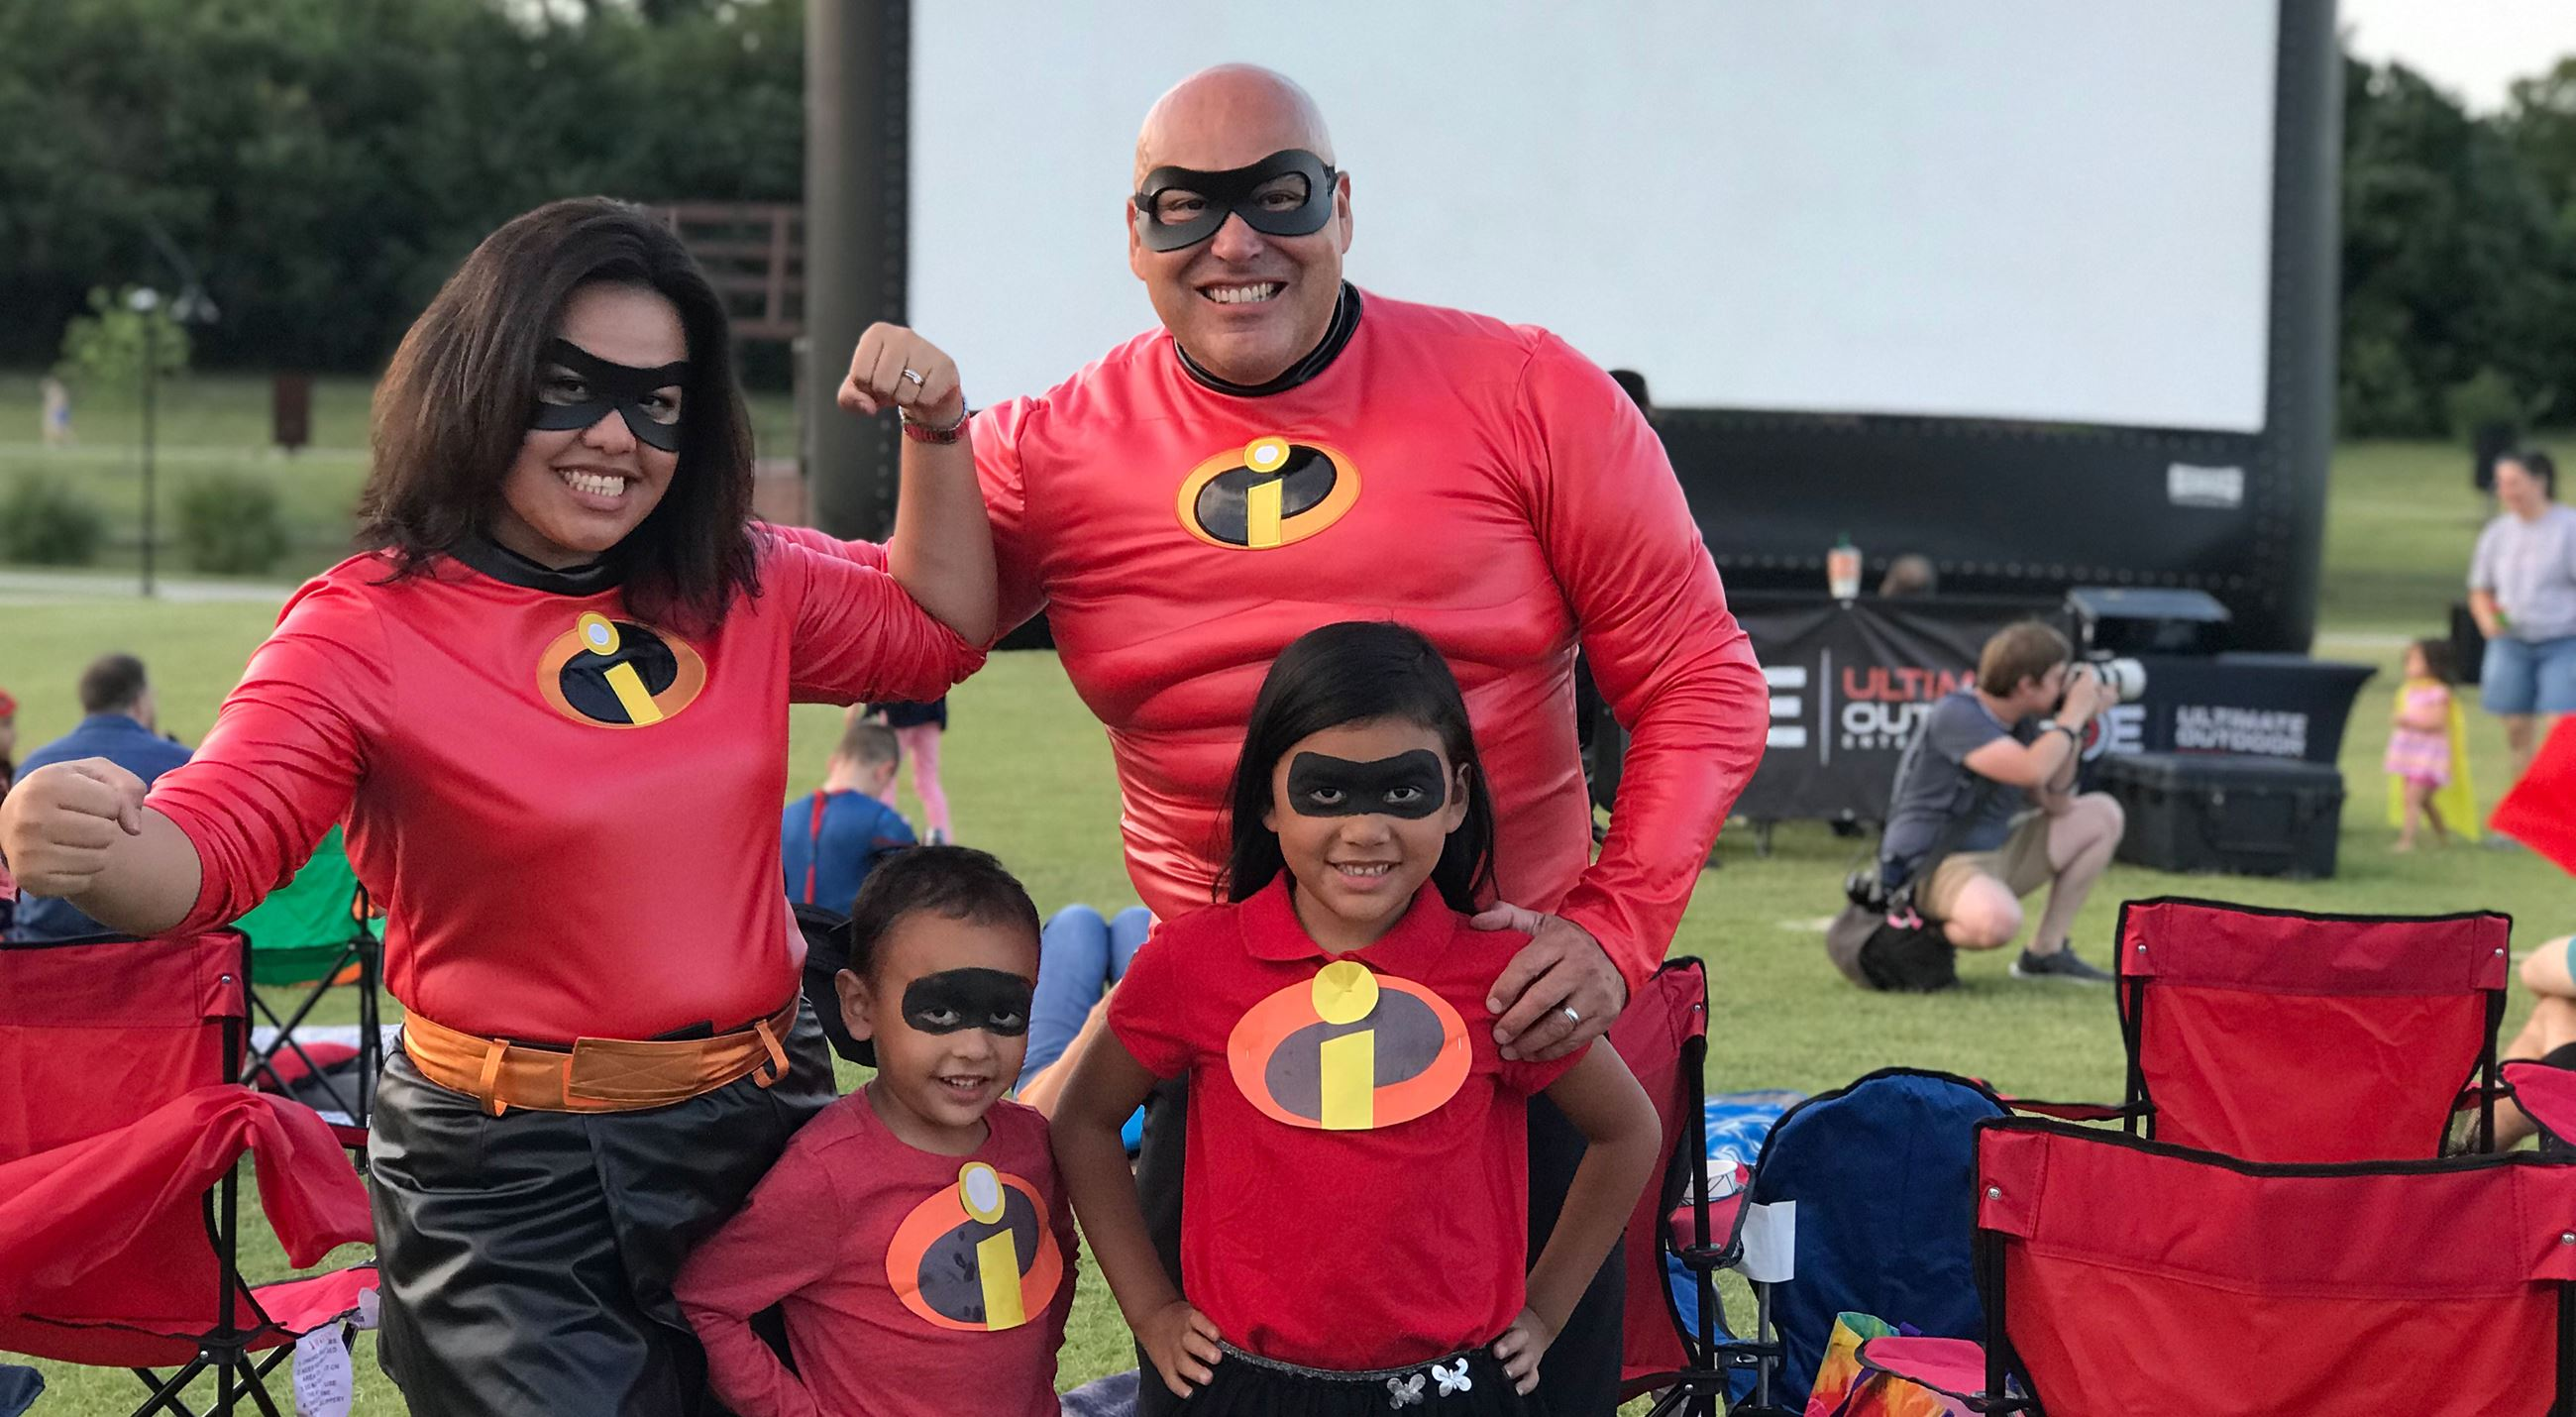 Family dressed as superheroes in the park